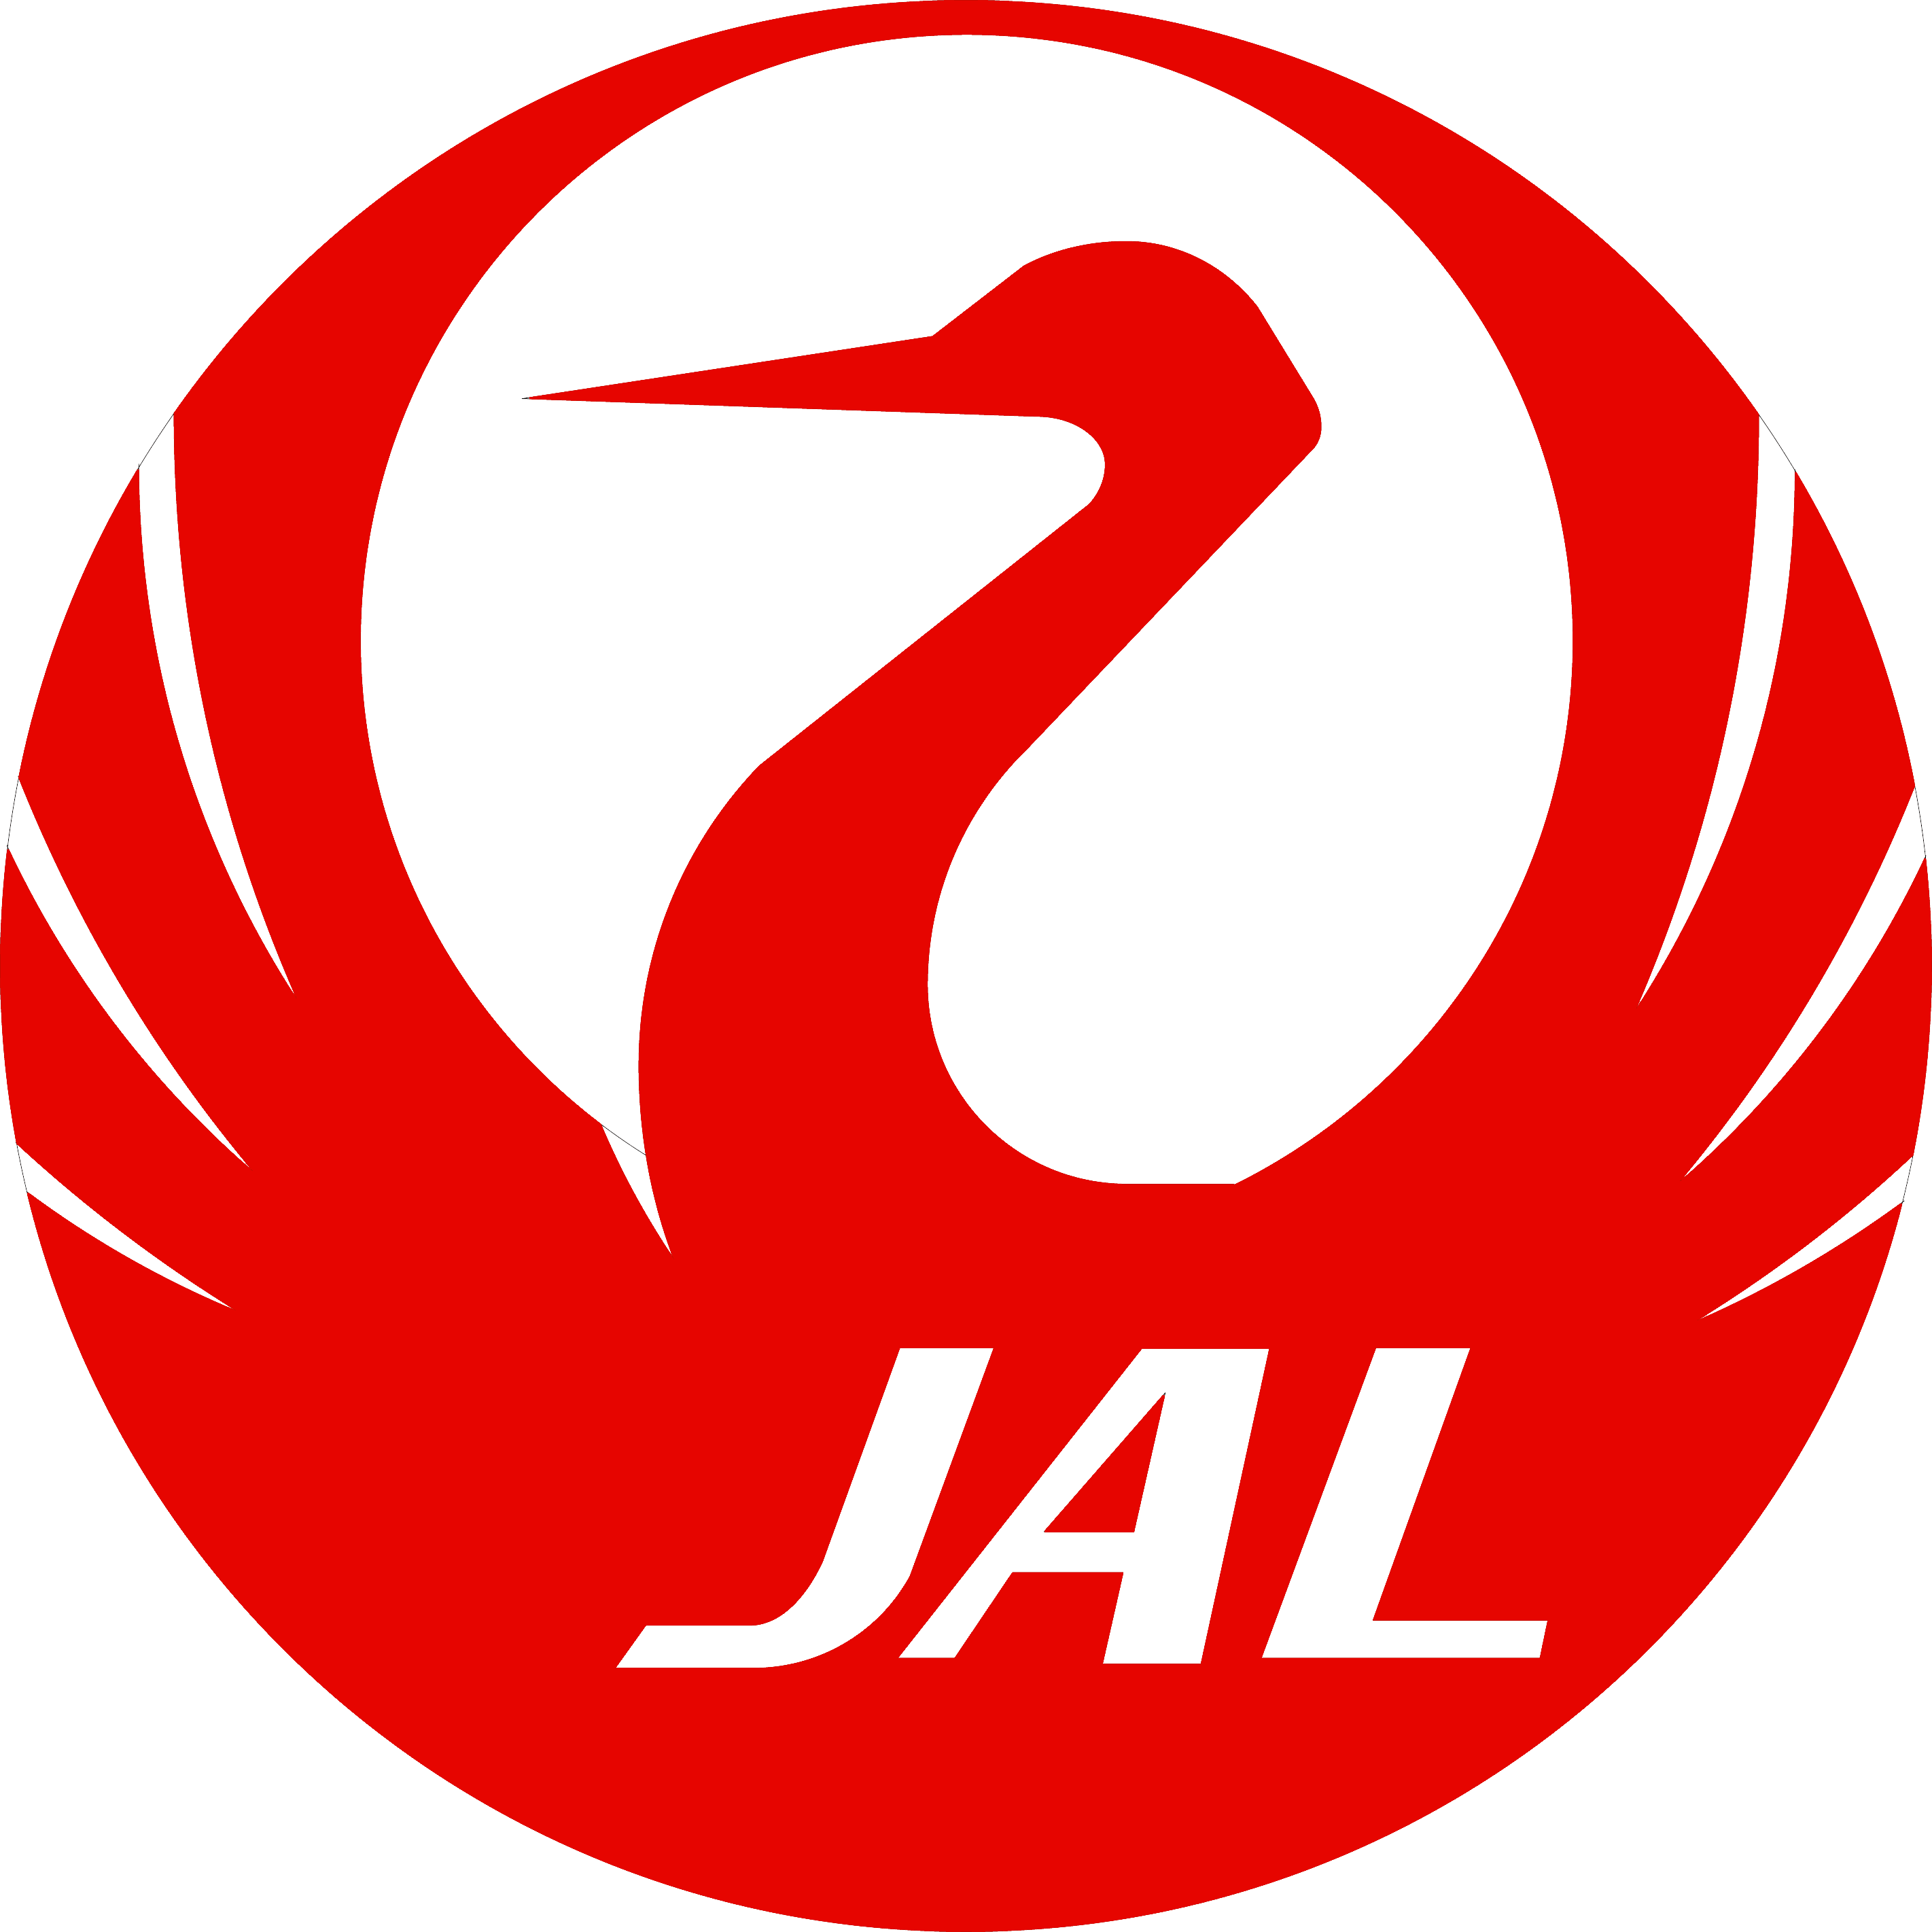 JALのロゴ